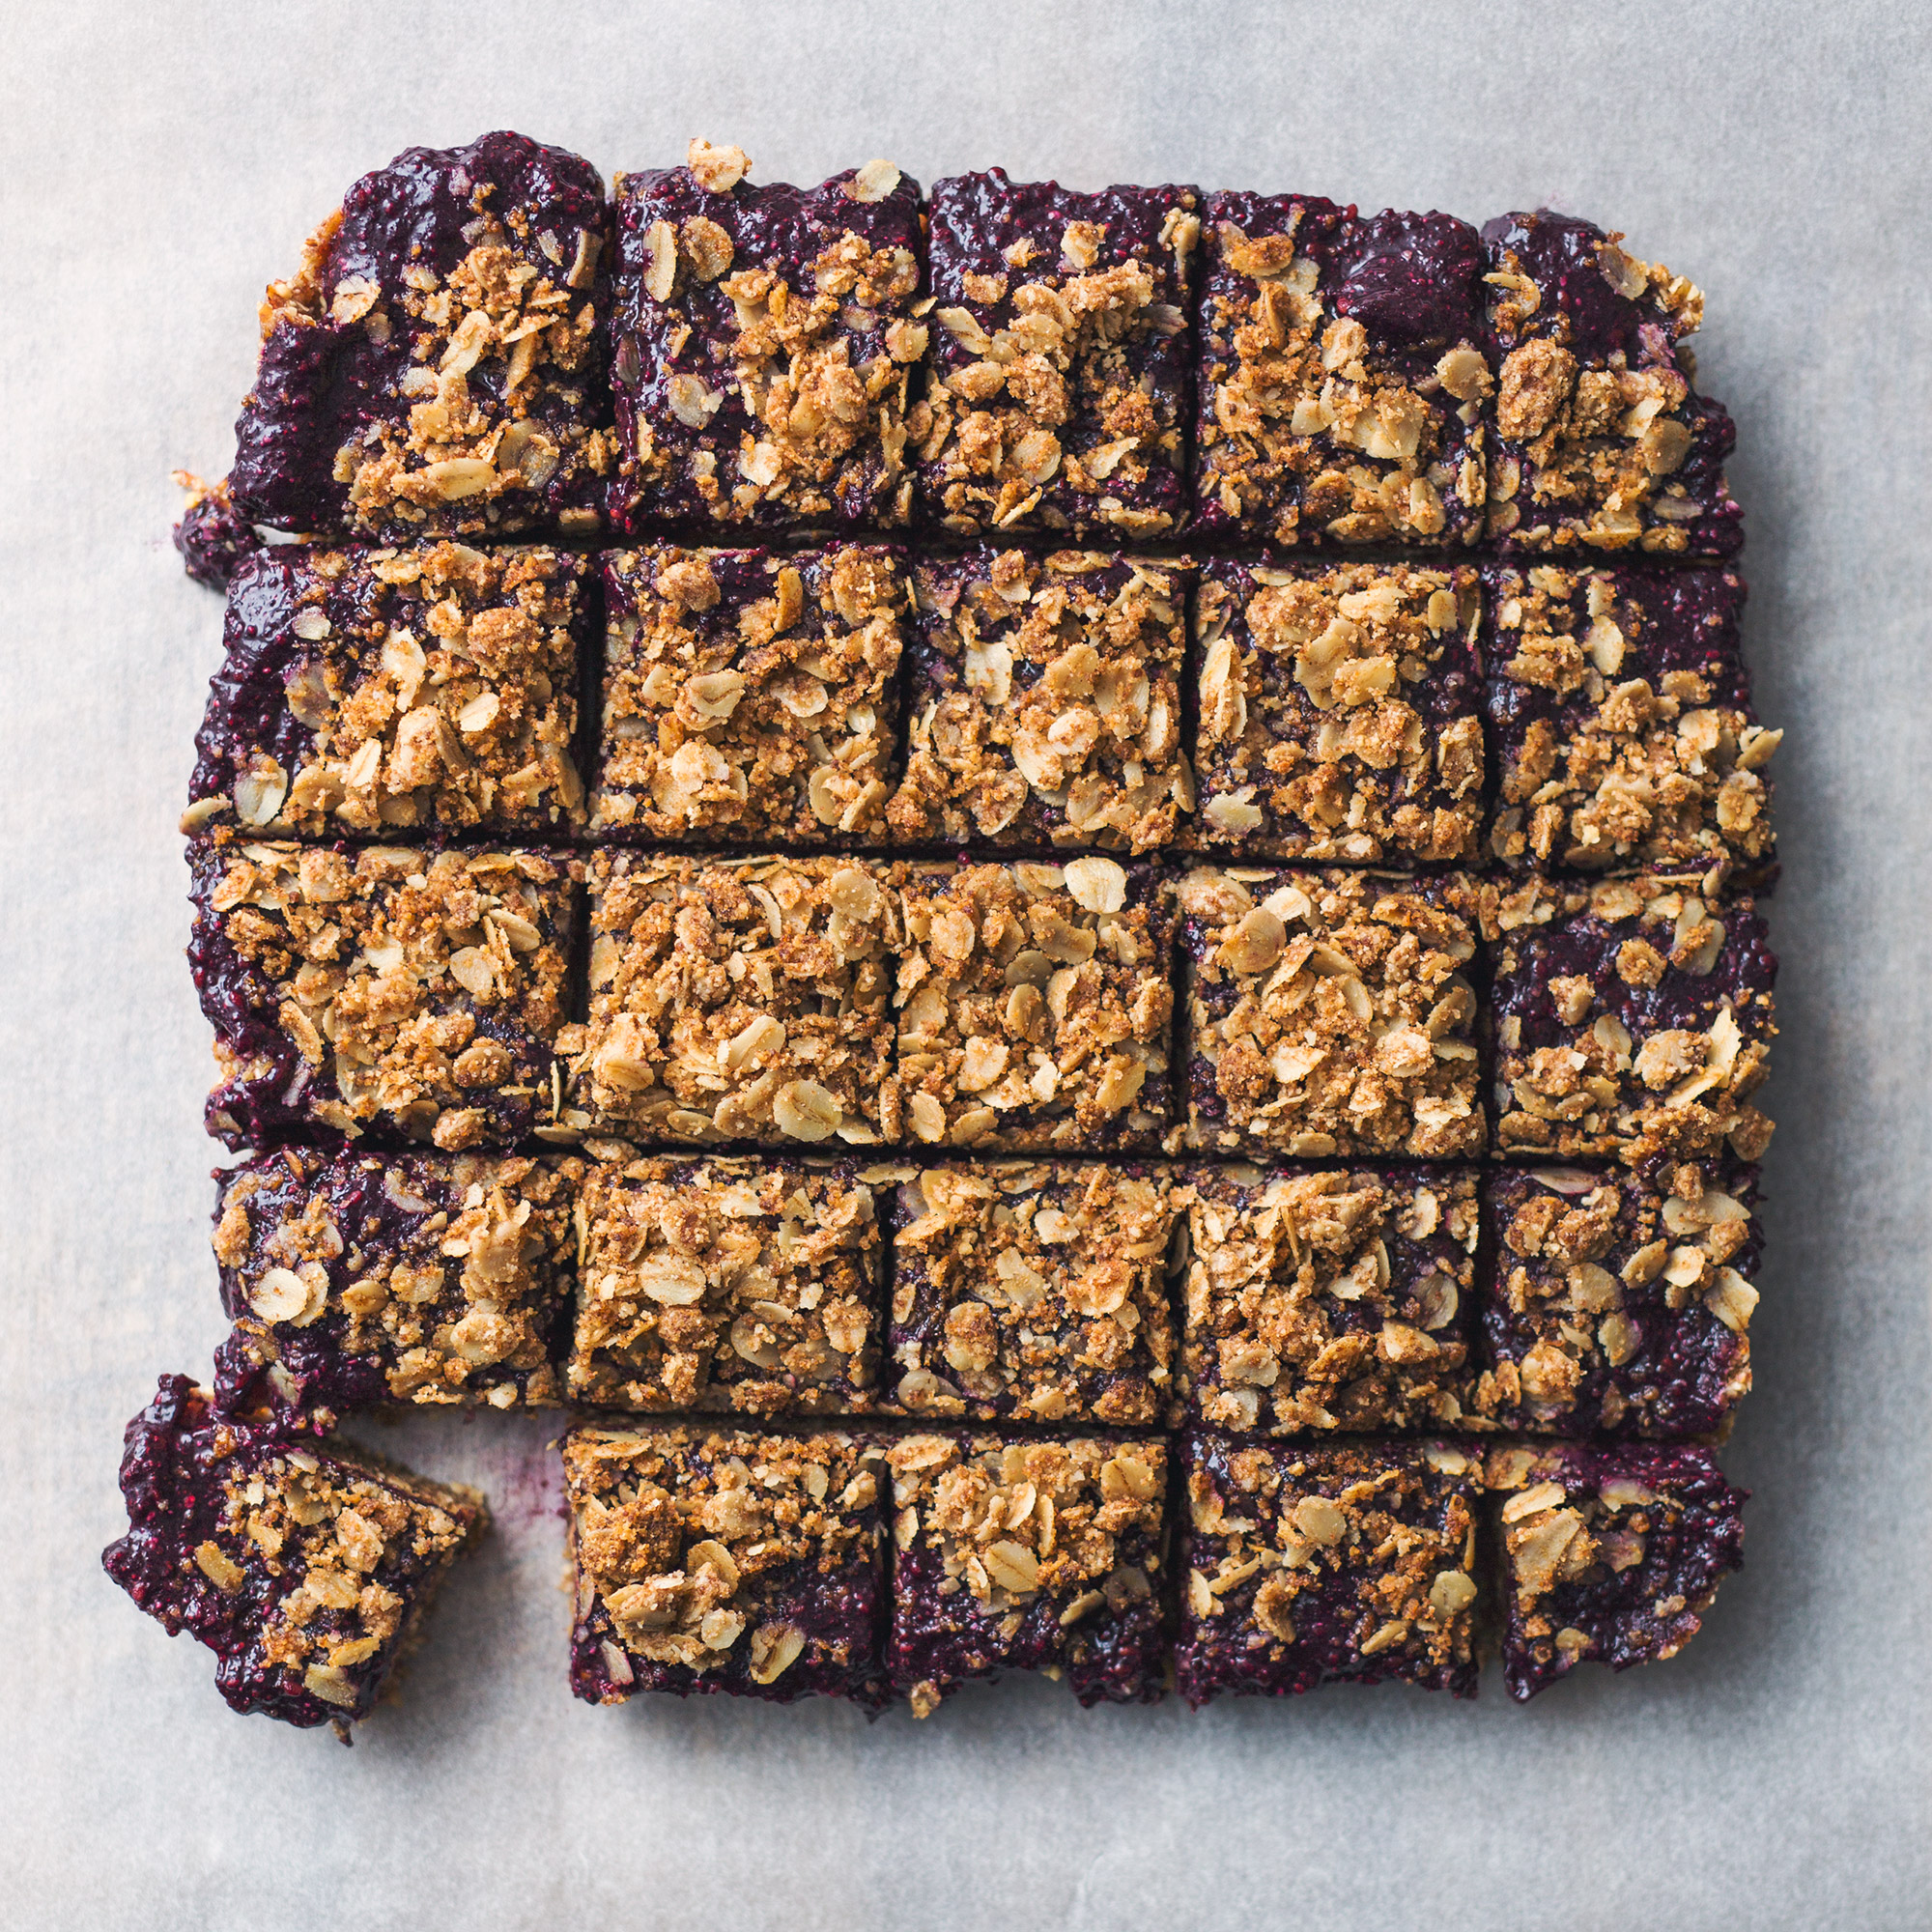 Blackberry Chia Jam Crumble Bars